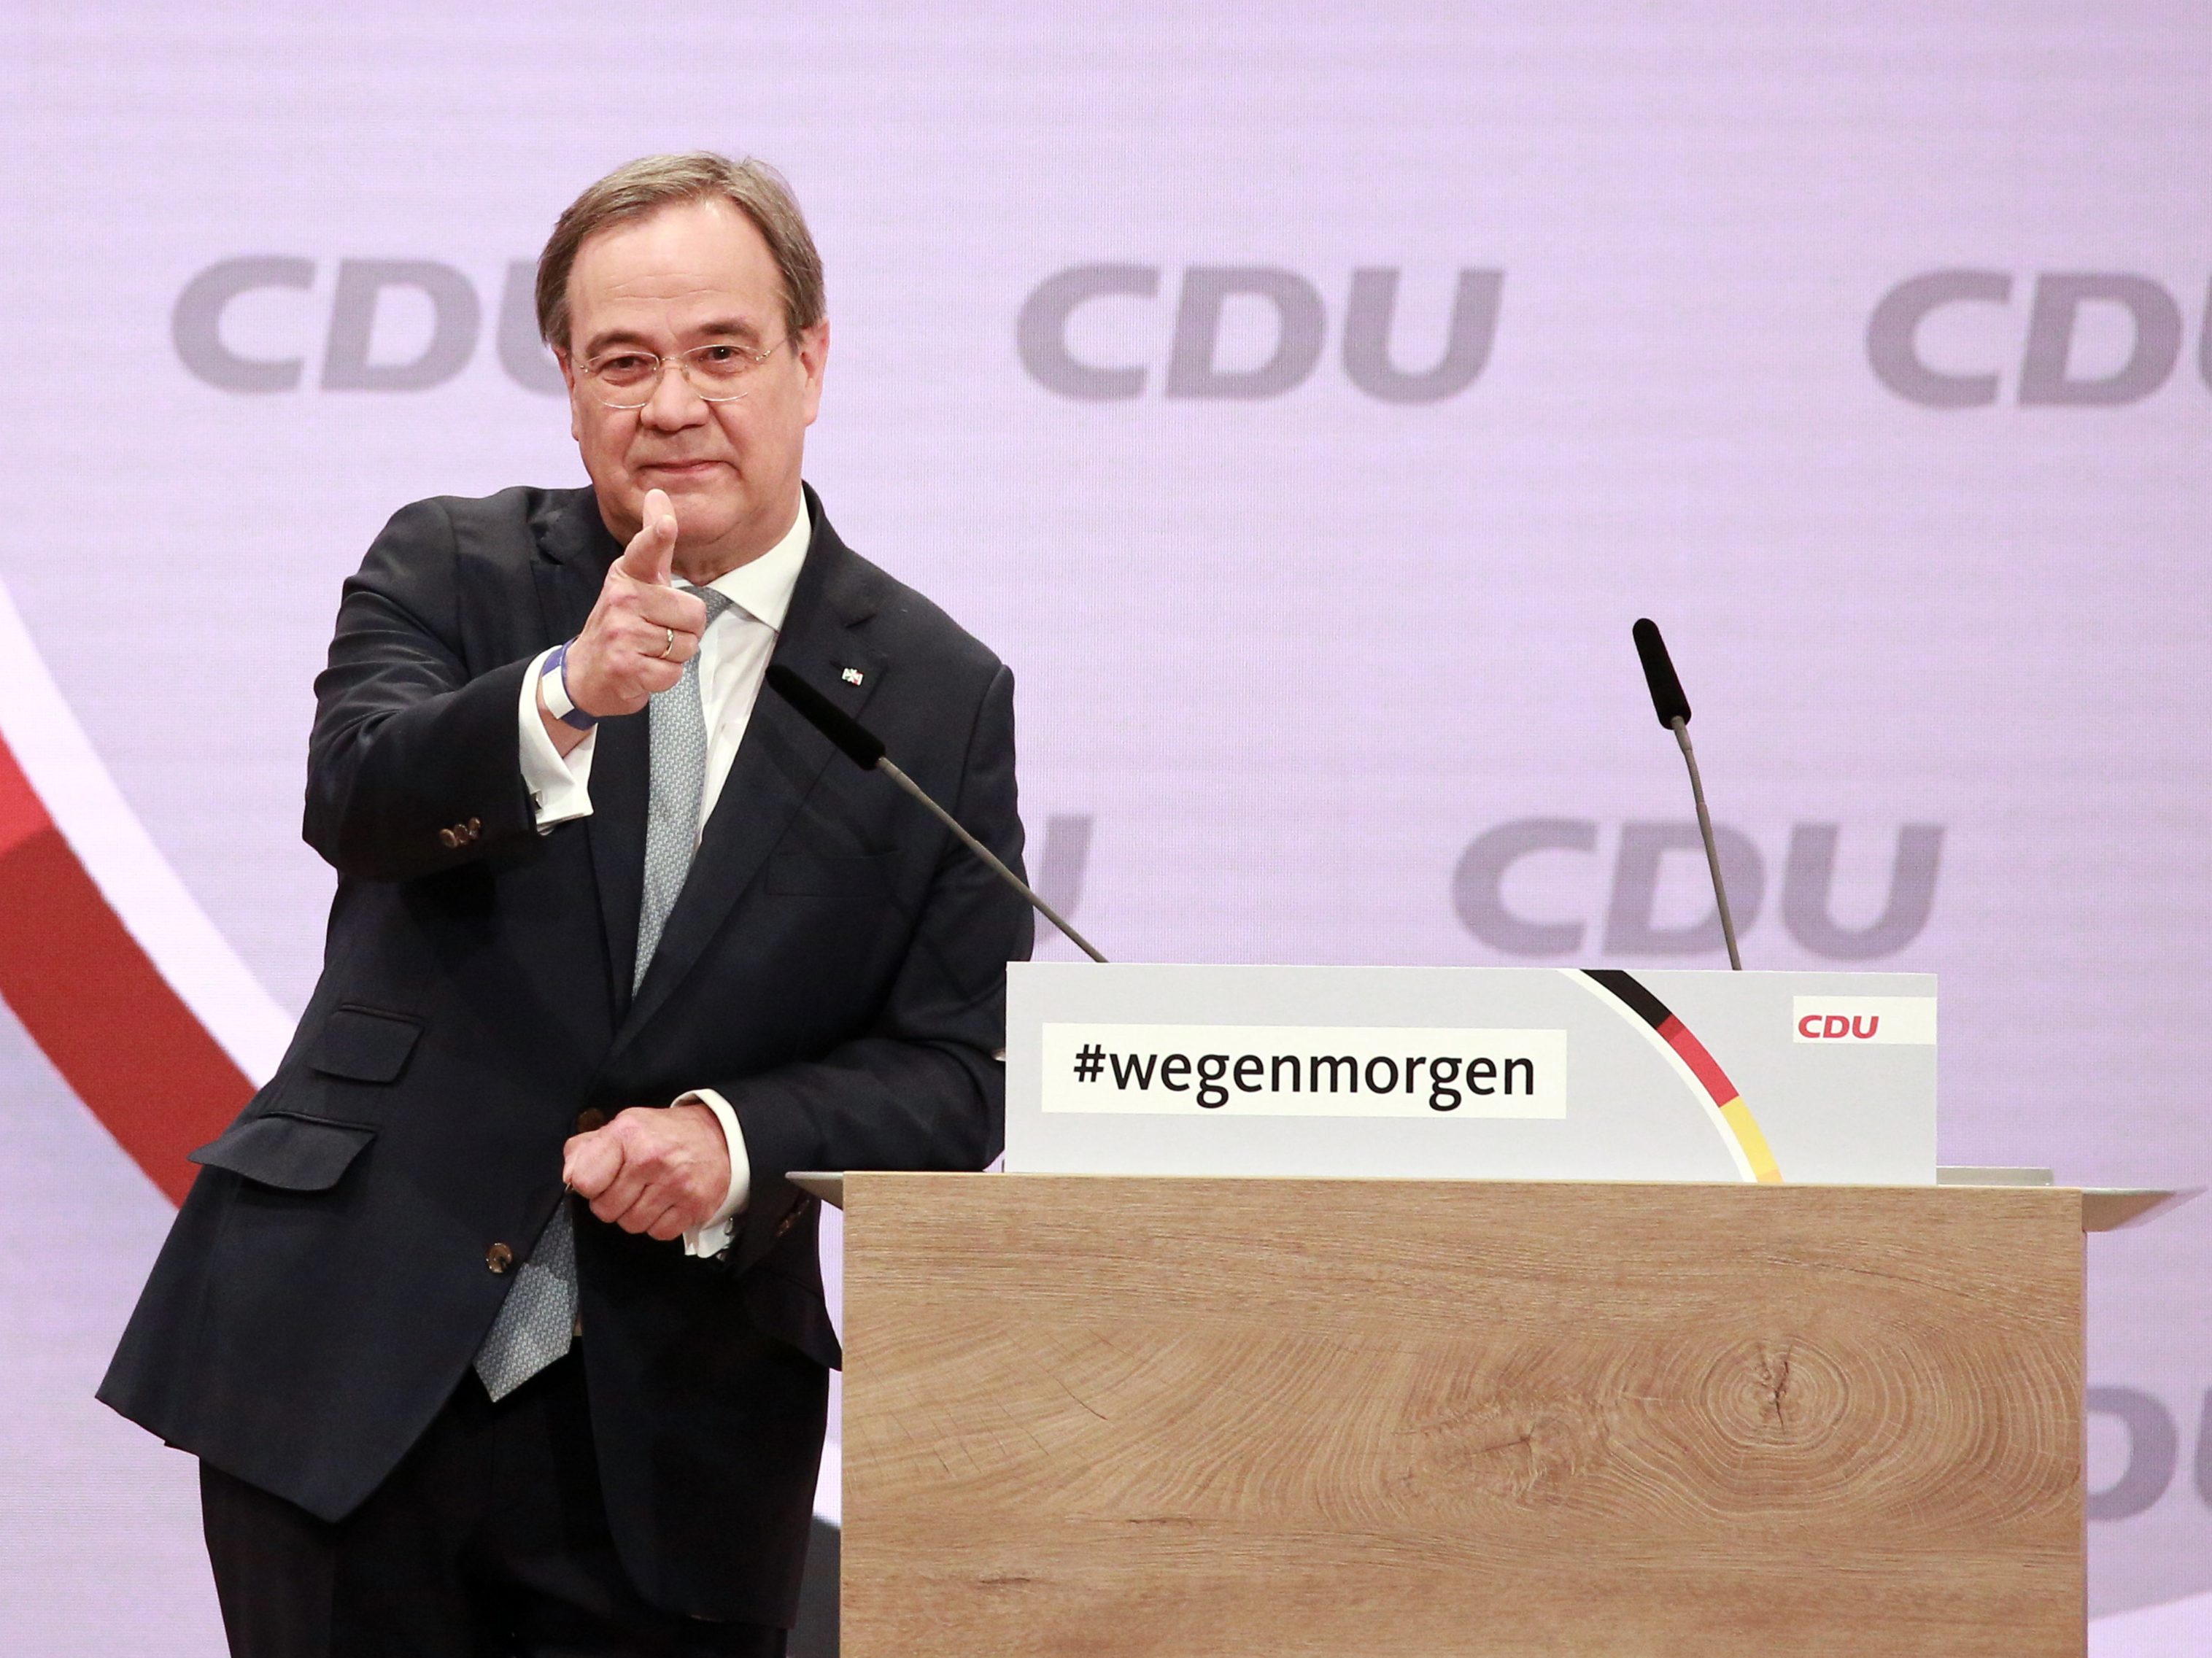 Armin Laschet confirmed as leader of Angela Merkel's CDU party